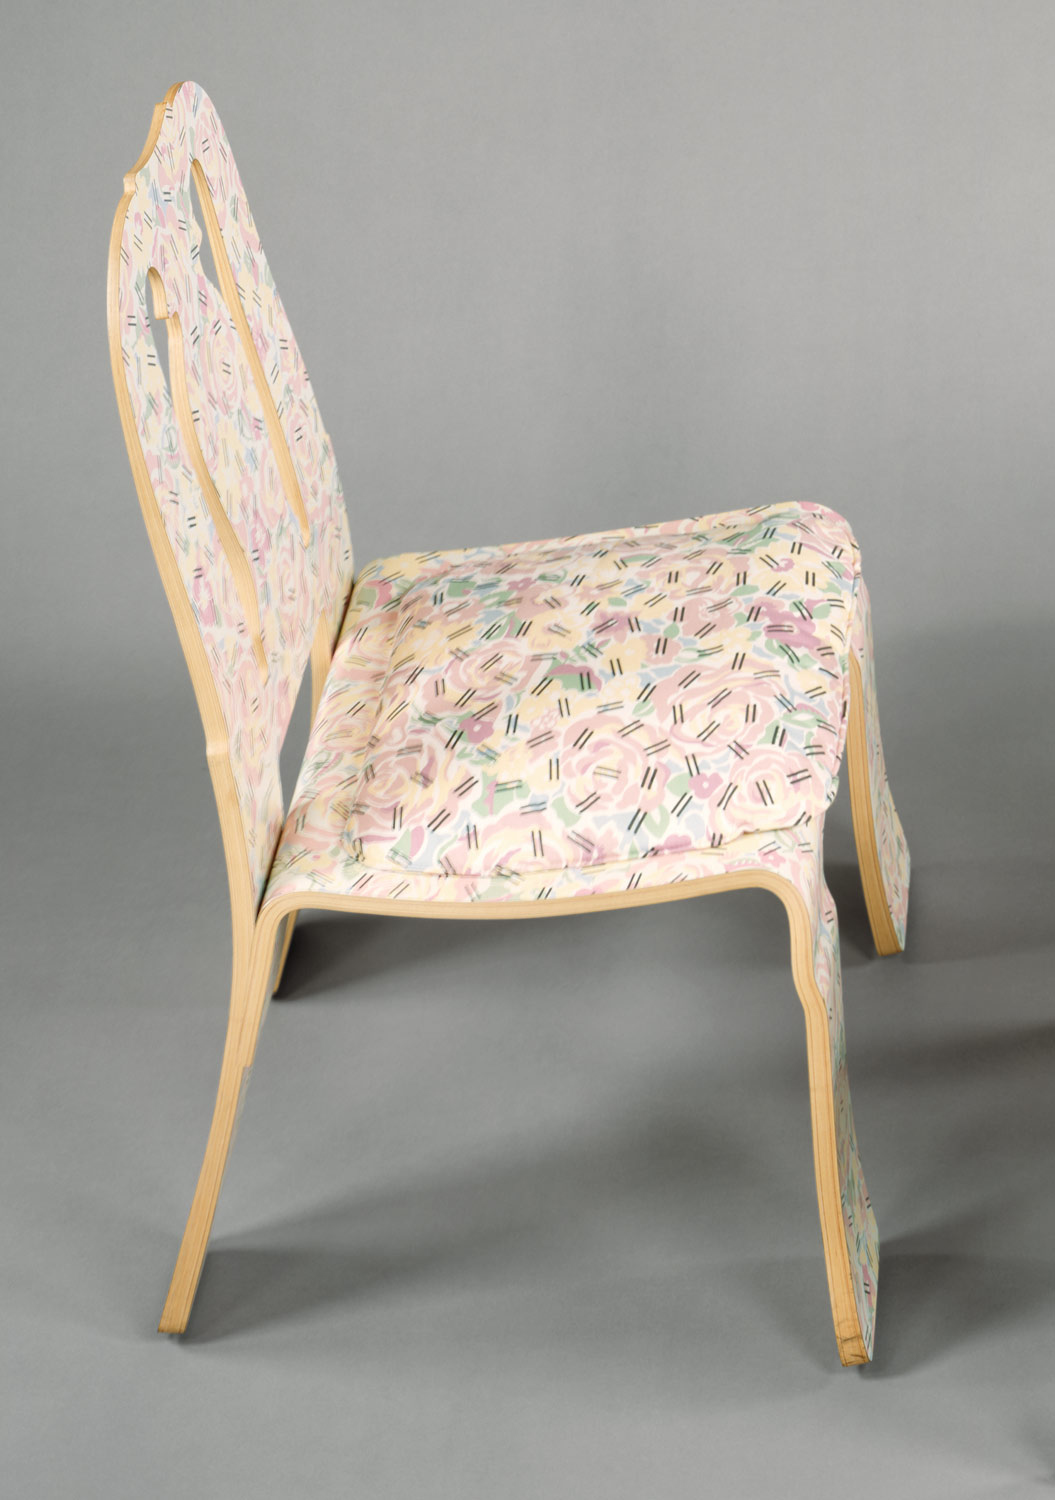 Queen anne chair history - 1985 113 1